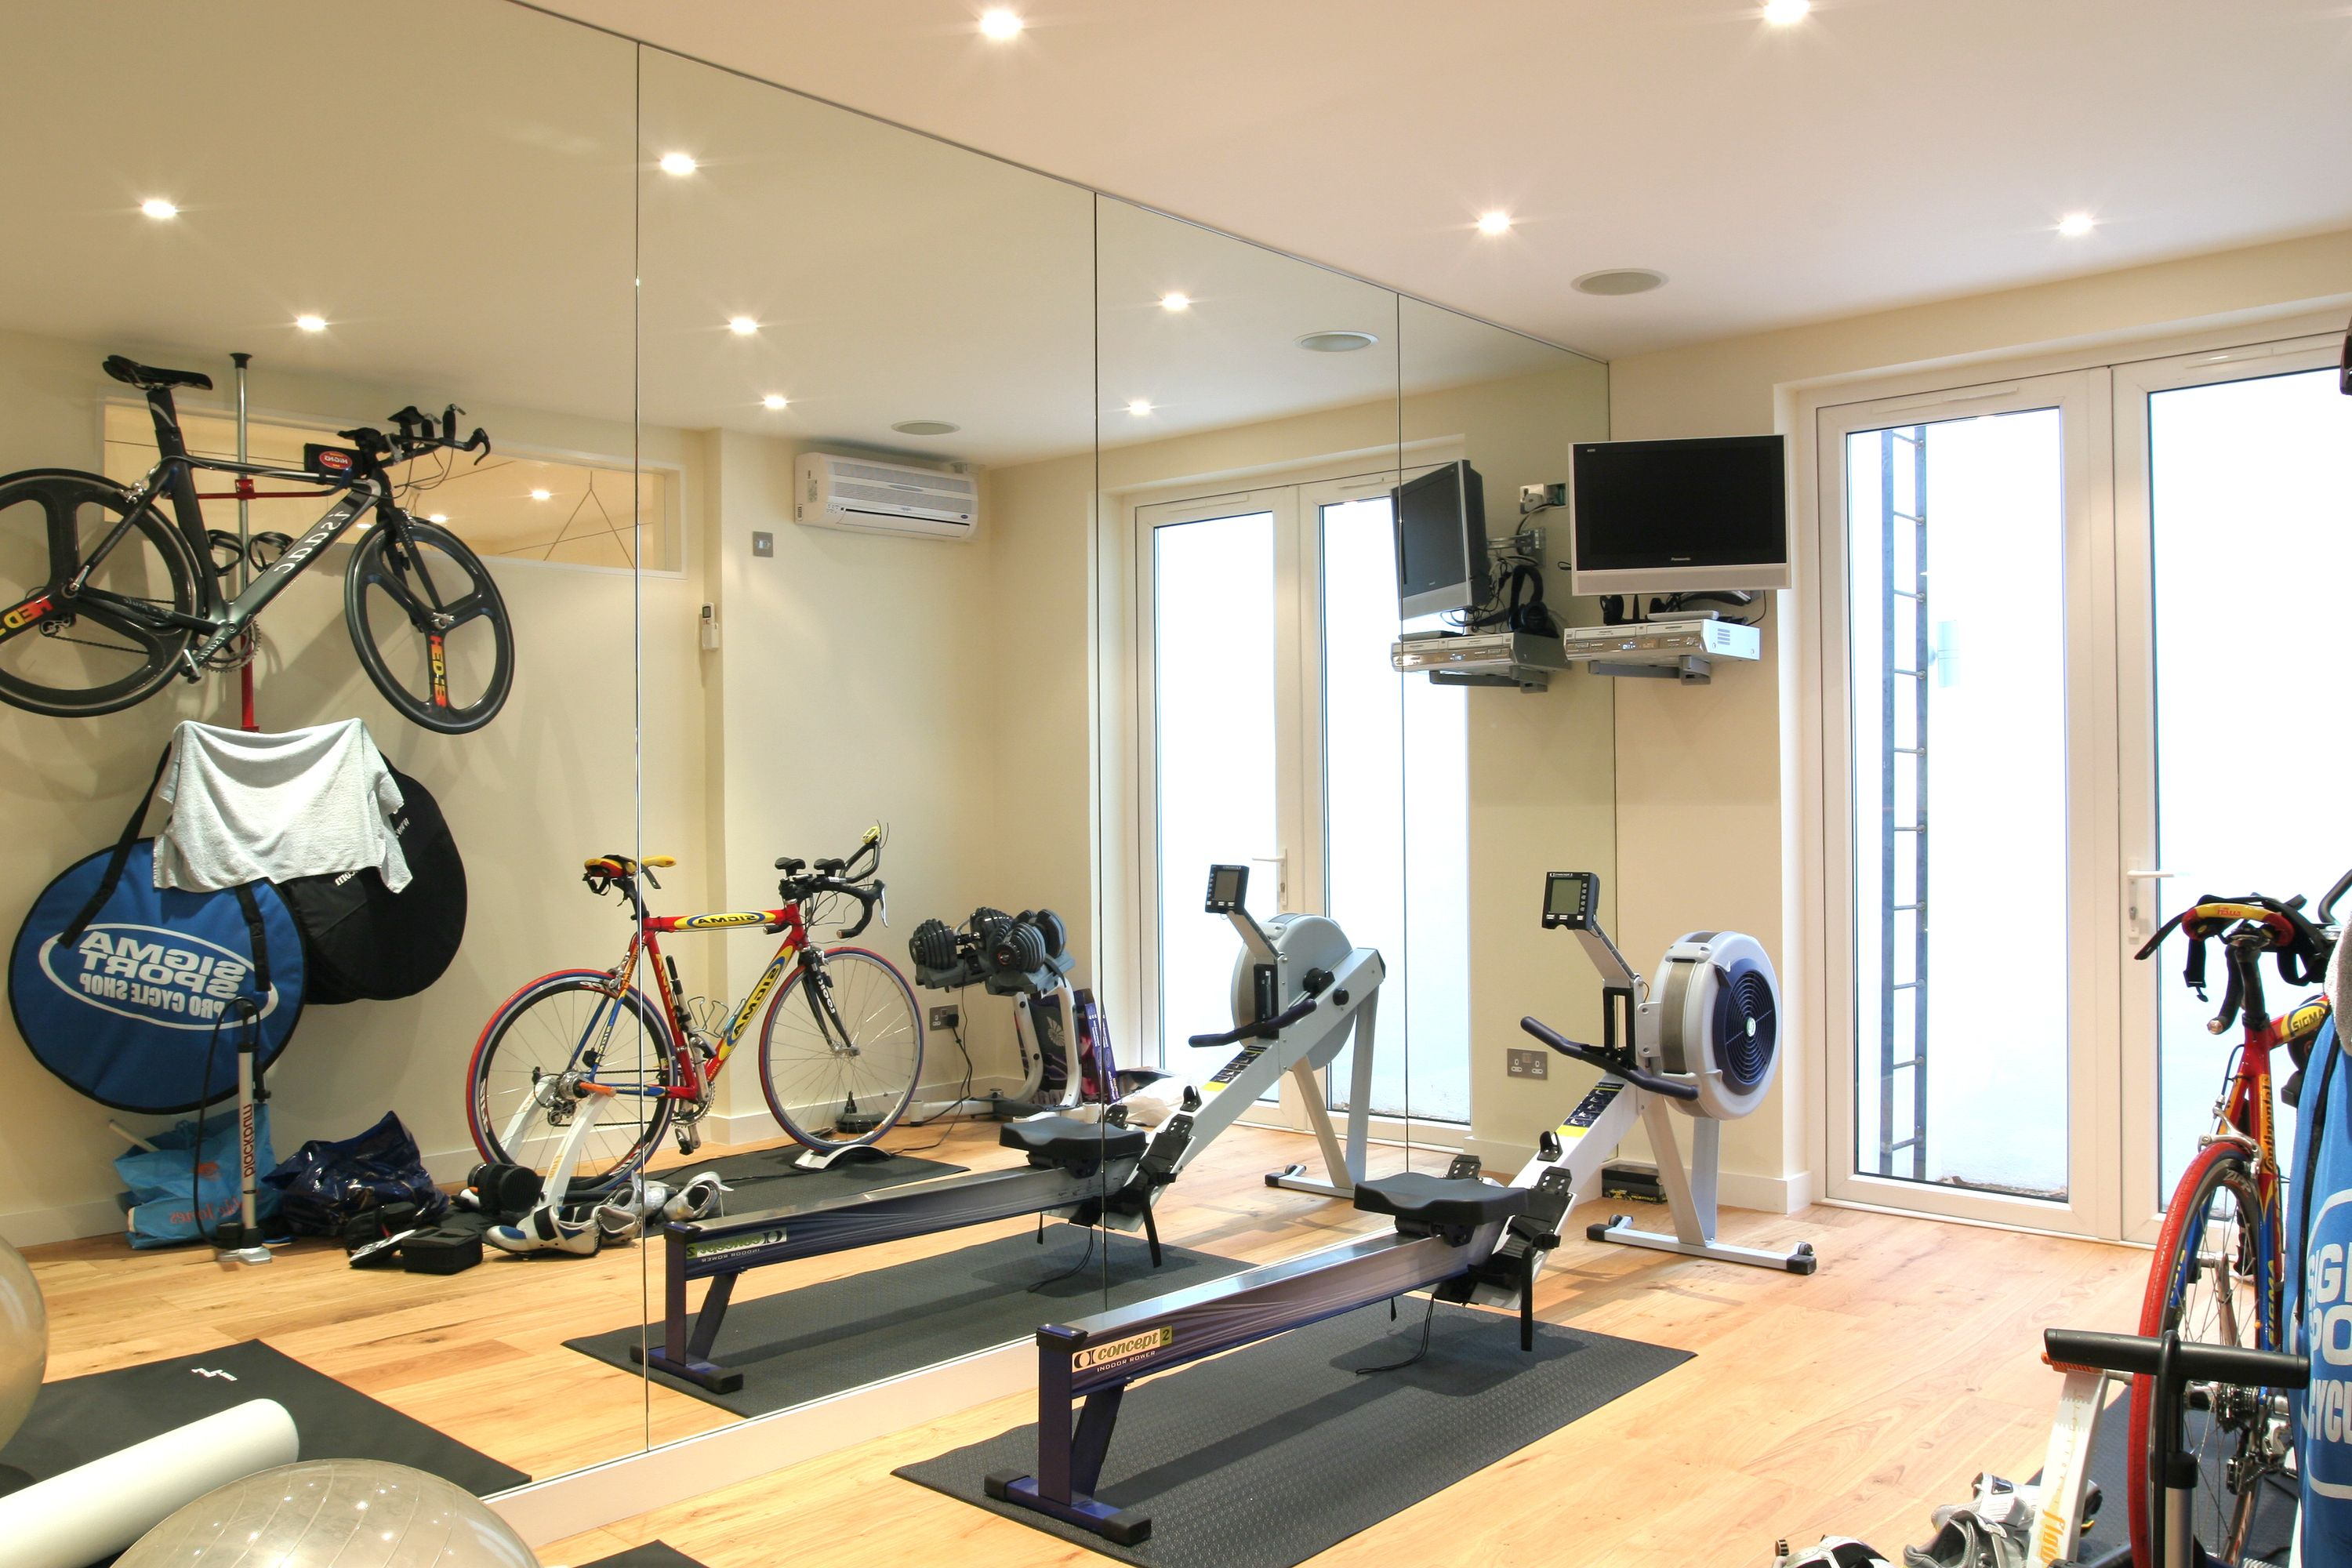 With This Basement Gym Situated With A Lightwell And French